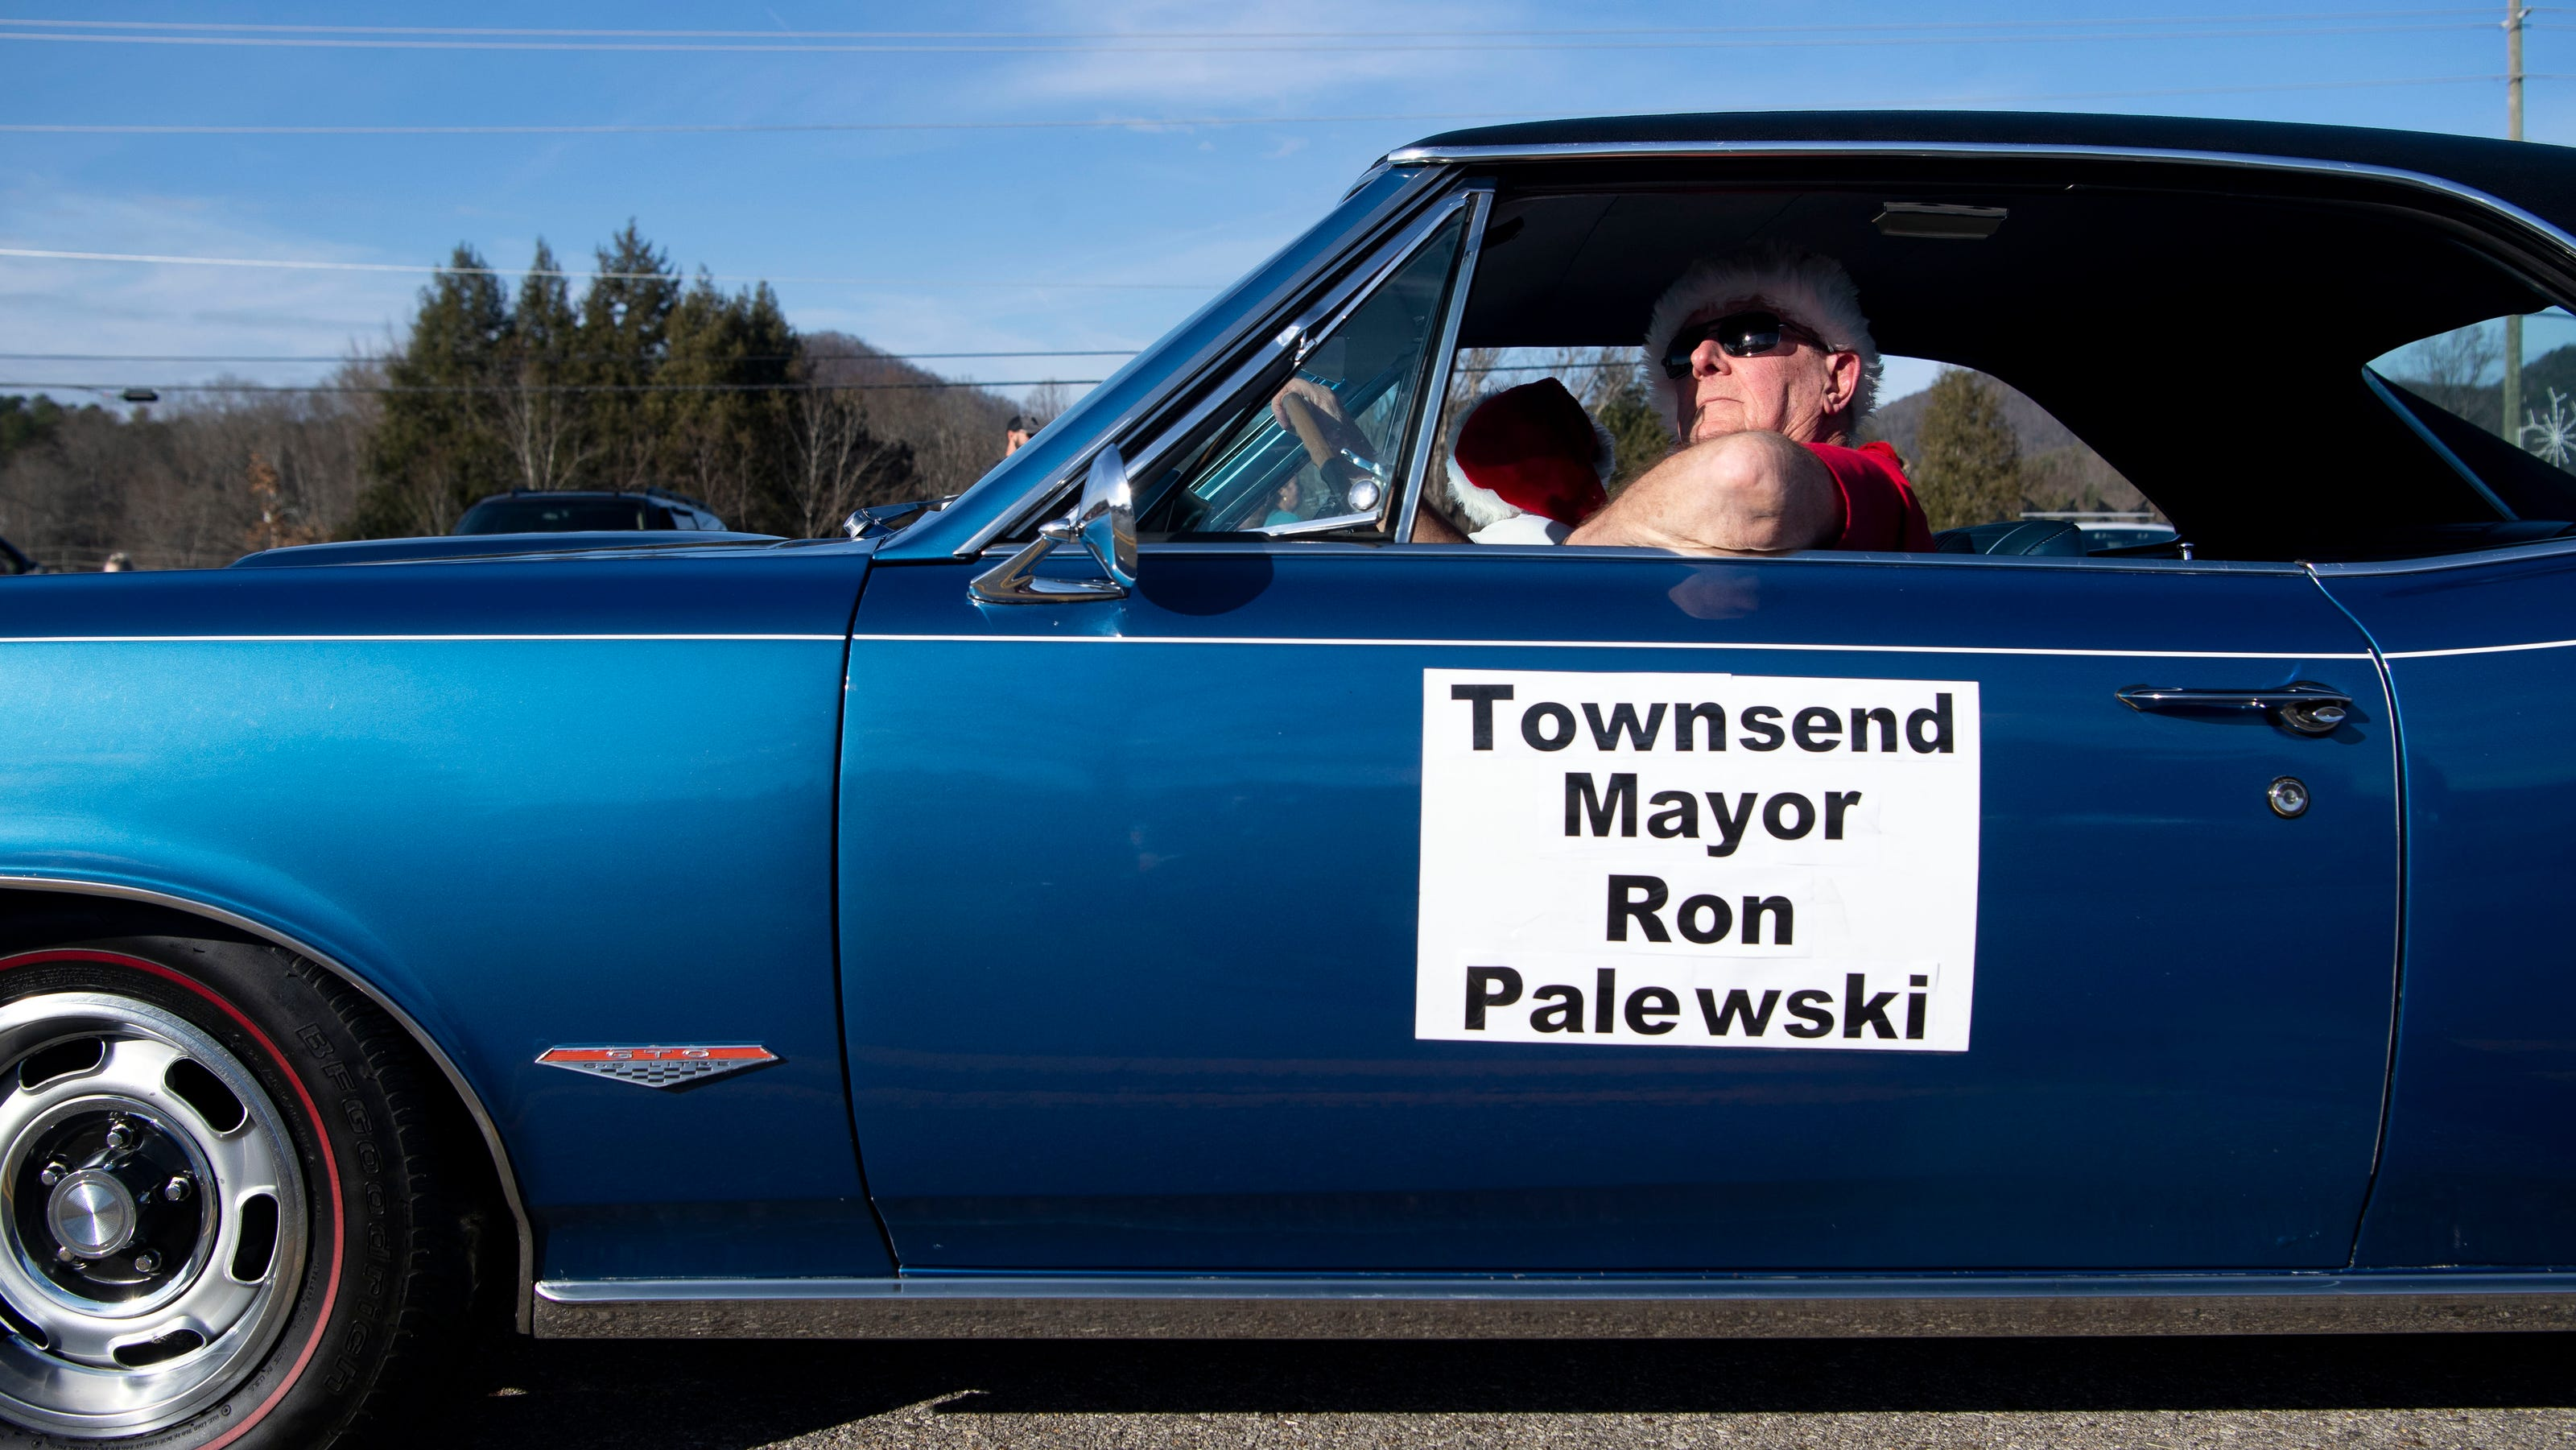 Townsend announces death of city mayor Ron Palewski